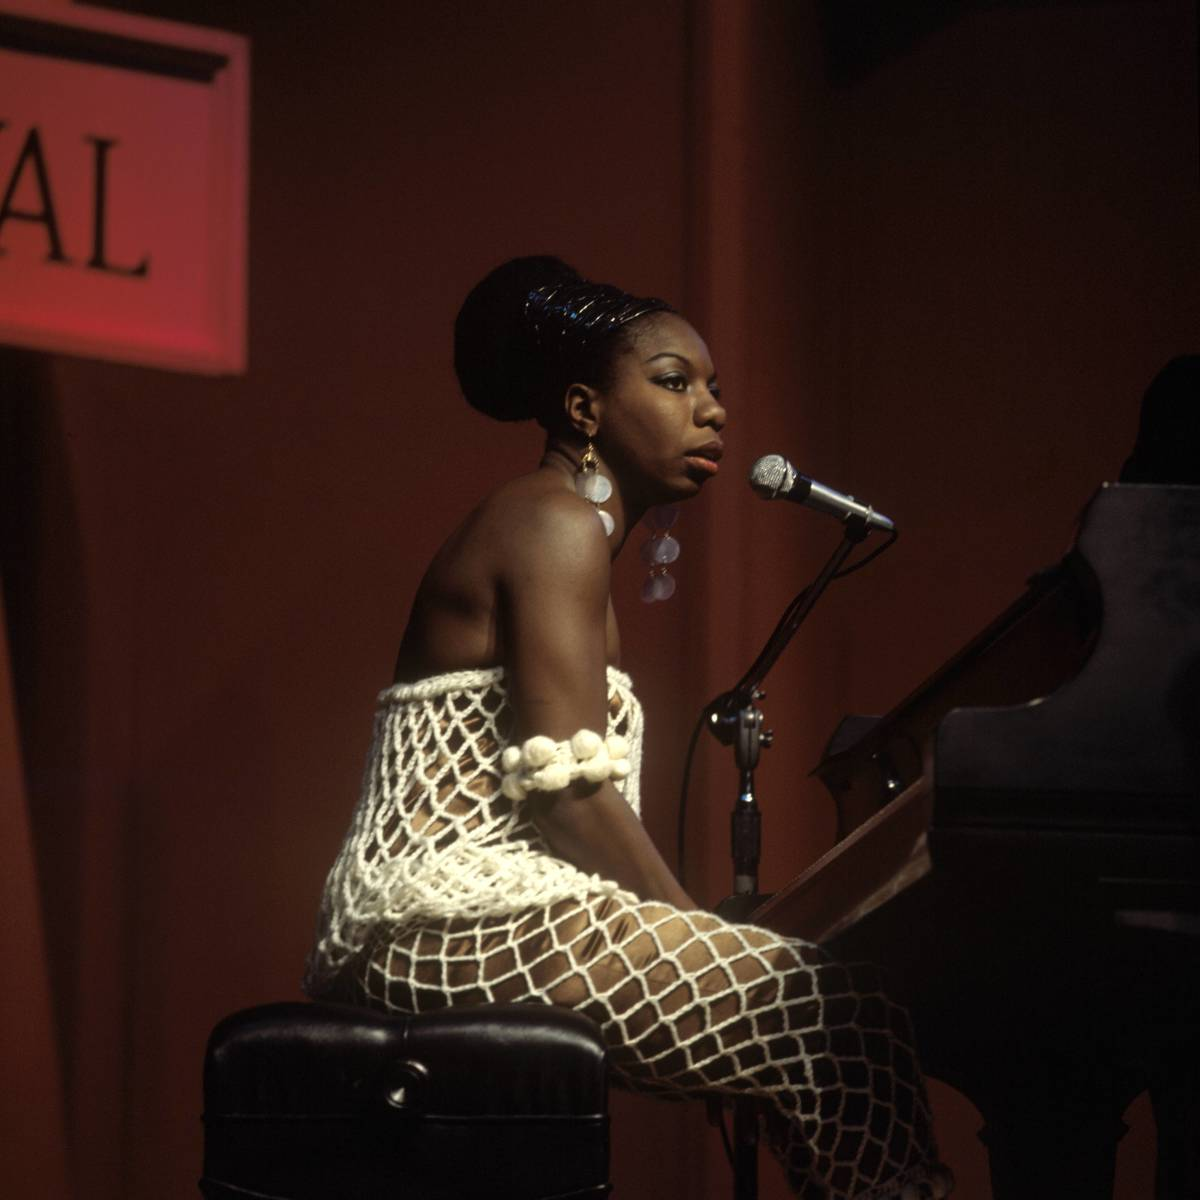 African-American Expats : Classical pianist and singer Nina Simone revolutionized American  jazz.  In search of a more racially equitable music scene and culture -  and to  avoid unpaid taxes - Simone traveled to Liberia, Switzerland,  and  Barbados before settling in the South of France in 1992. She lived  in  Aix-en-Provence until her death in 2003. (Photo: Redferns)